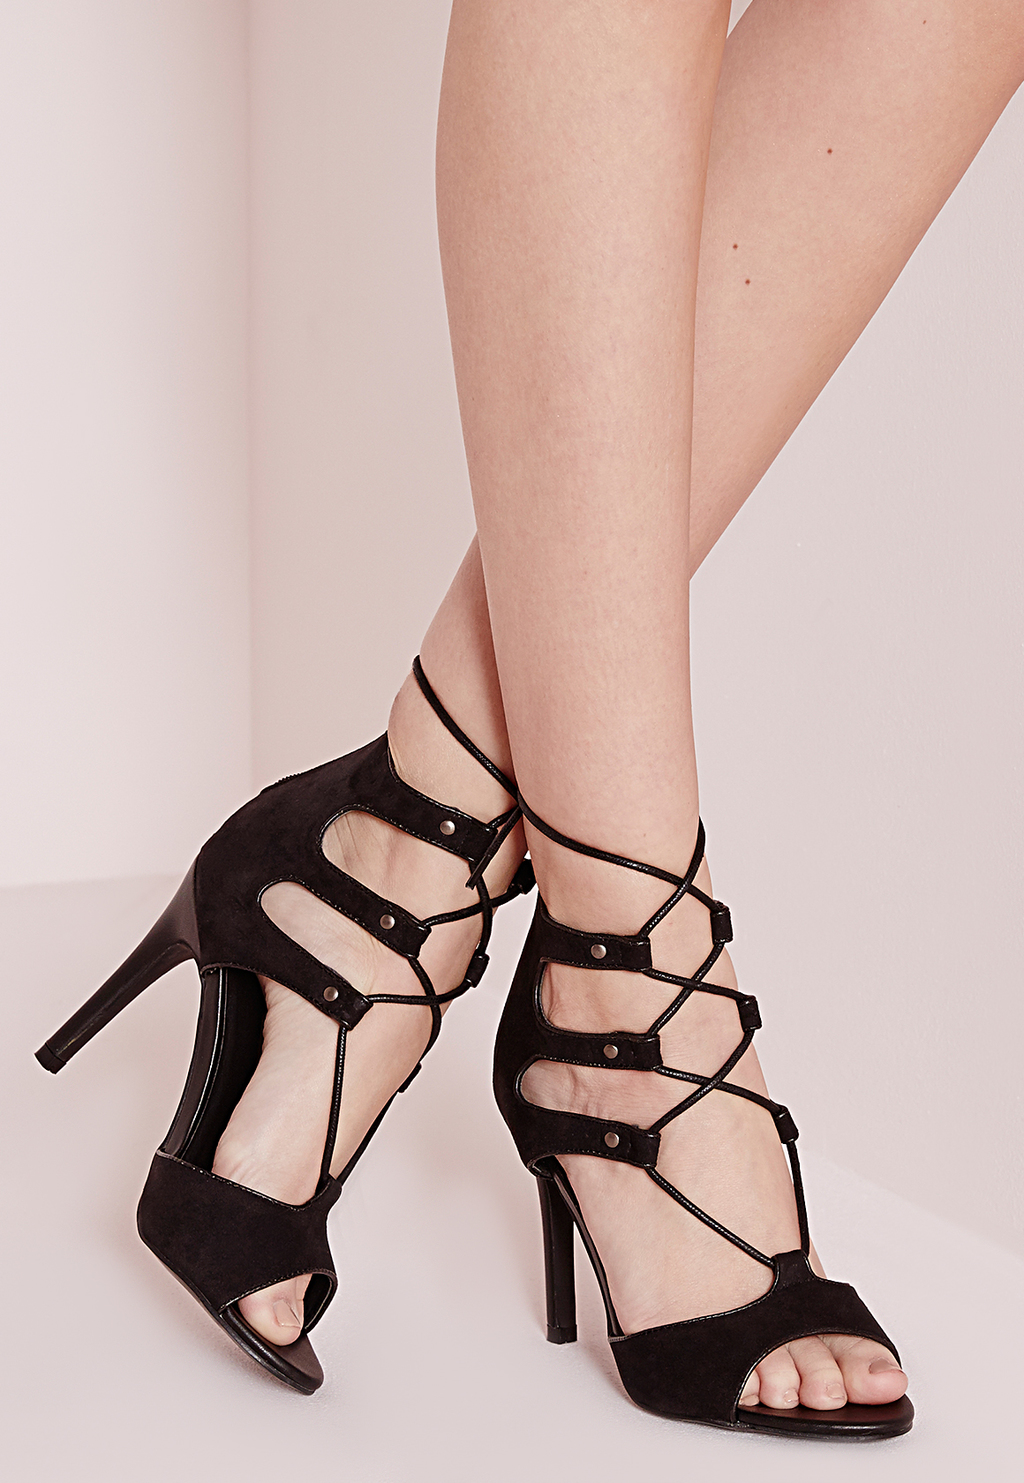 Lace Up Caged Heeled Sandals Black, Black - predominant colour: black; occasions: evening, occasion; material: faux leather; heel height: high; ankle detail: ankle tie; heel: stiletto; toe: open toe/peeptoe; style: strappy; finish: plain; pattern: plain; season: a/w 2015; wardrobe: event